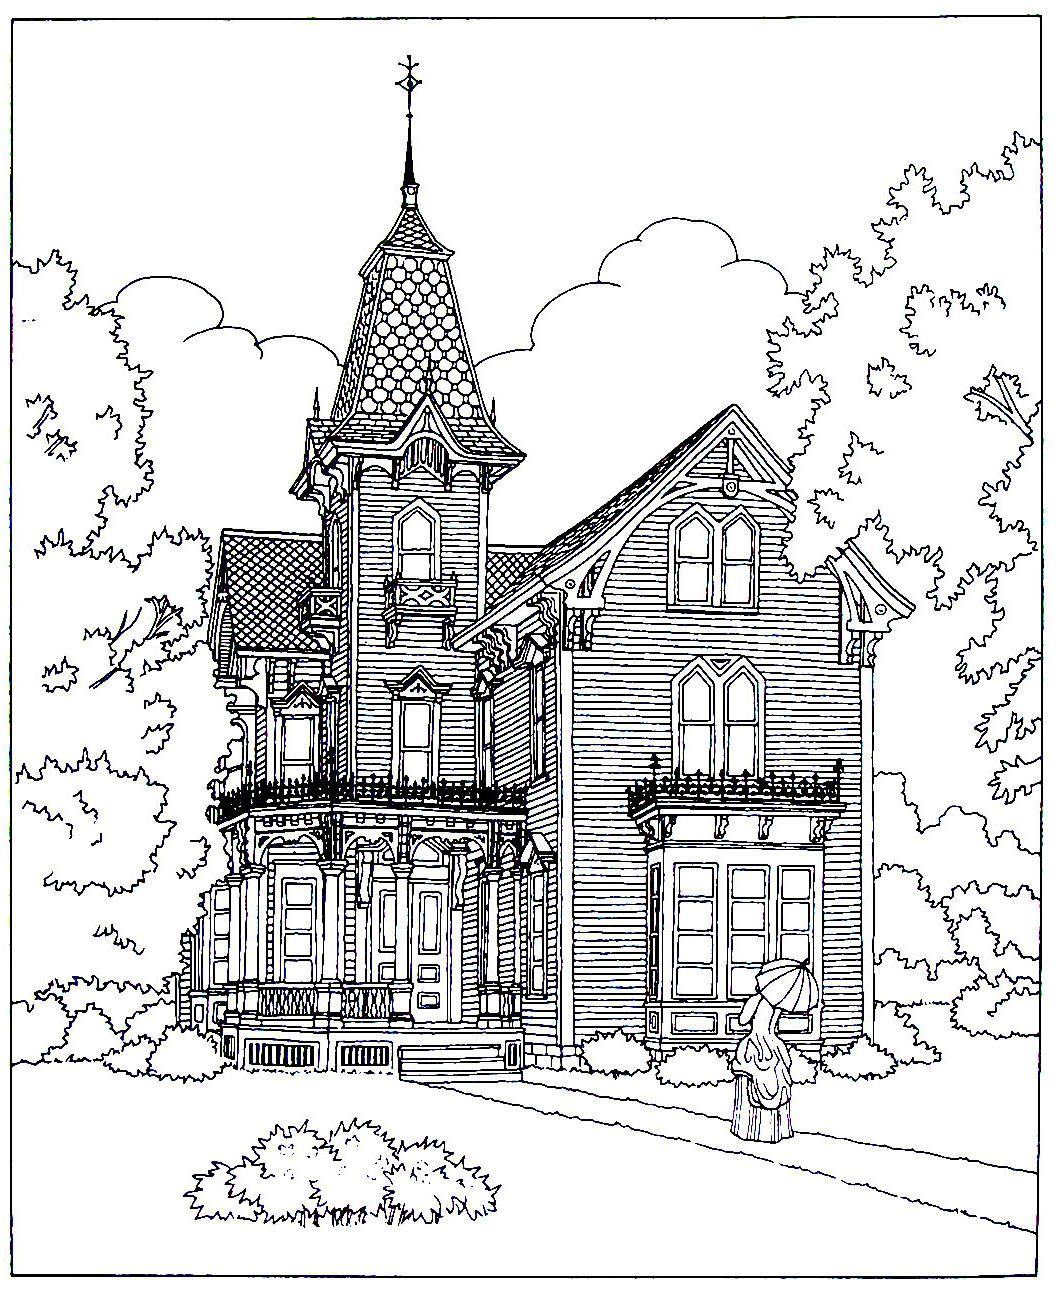 Victorian House printable coloring book page. A High